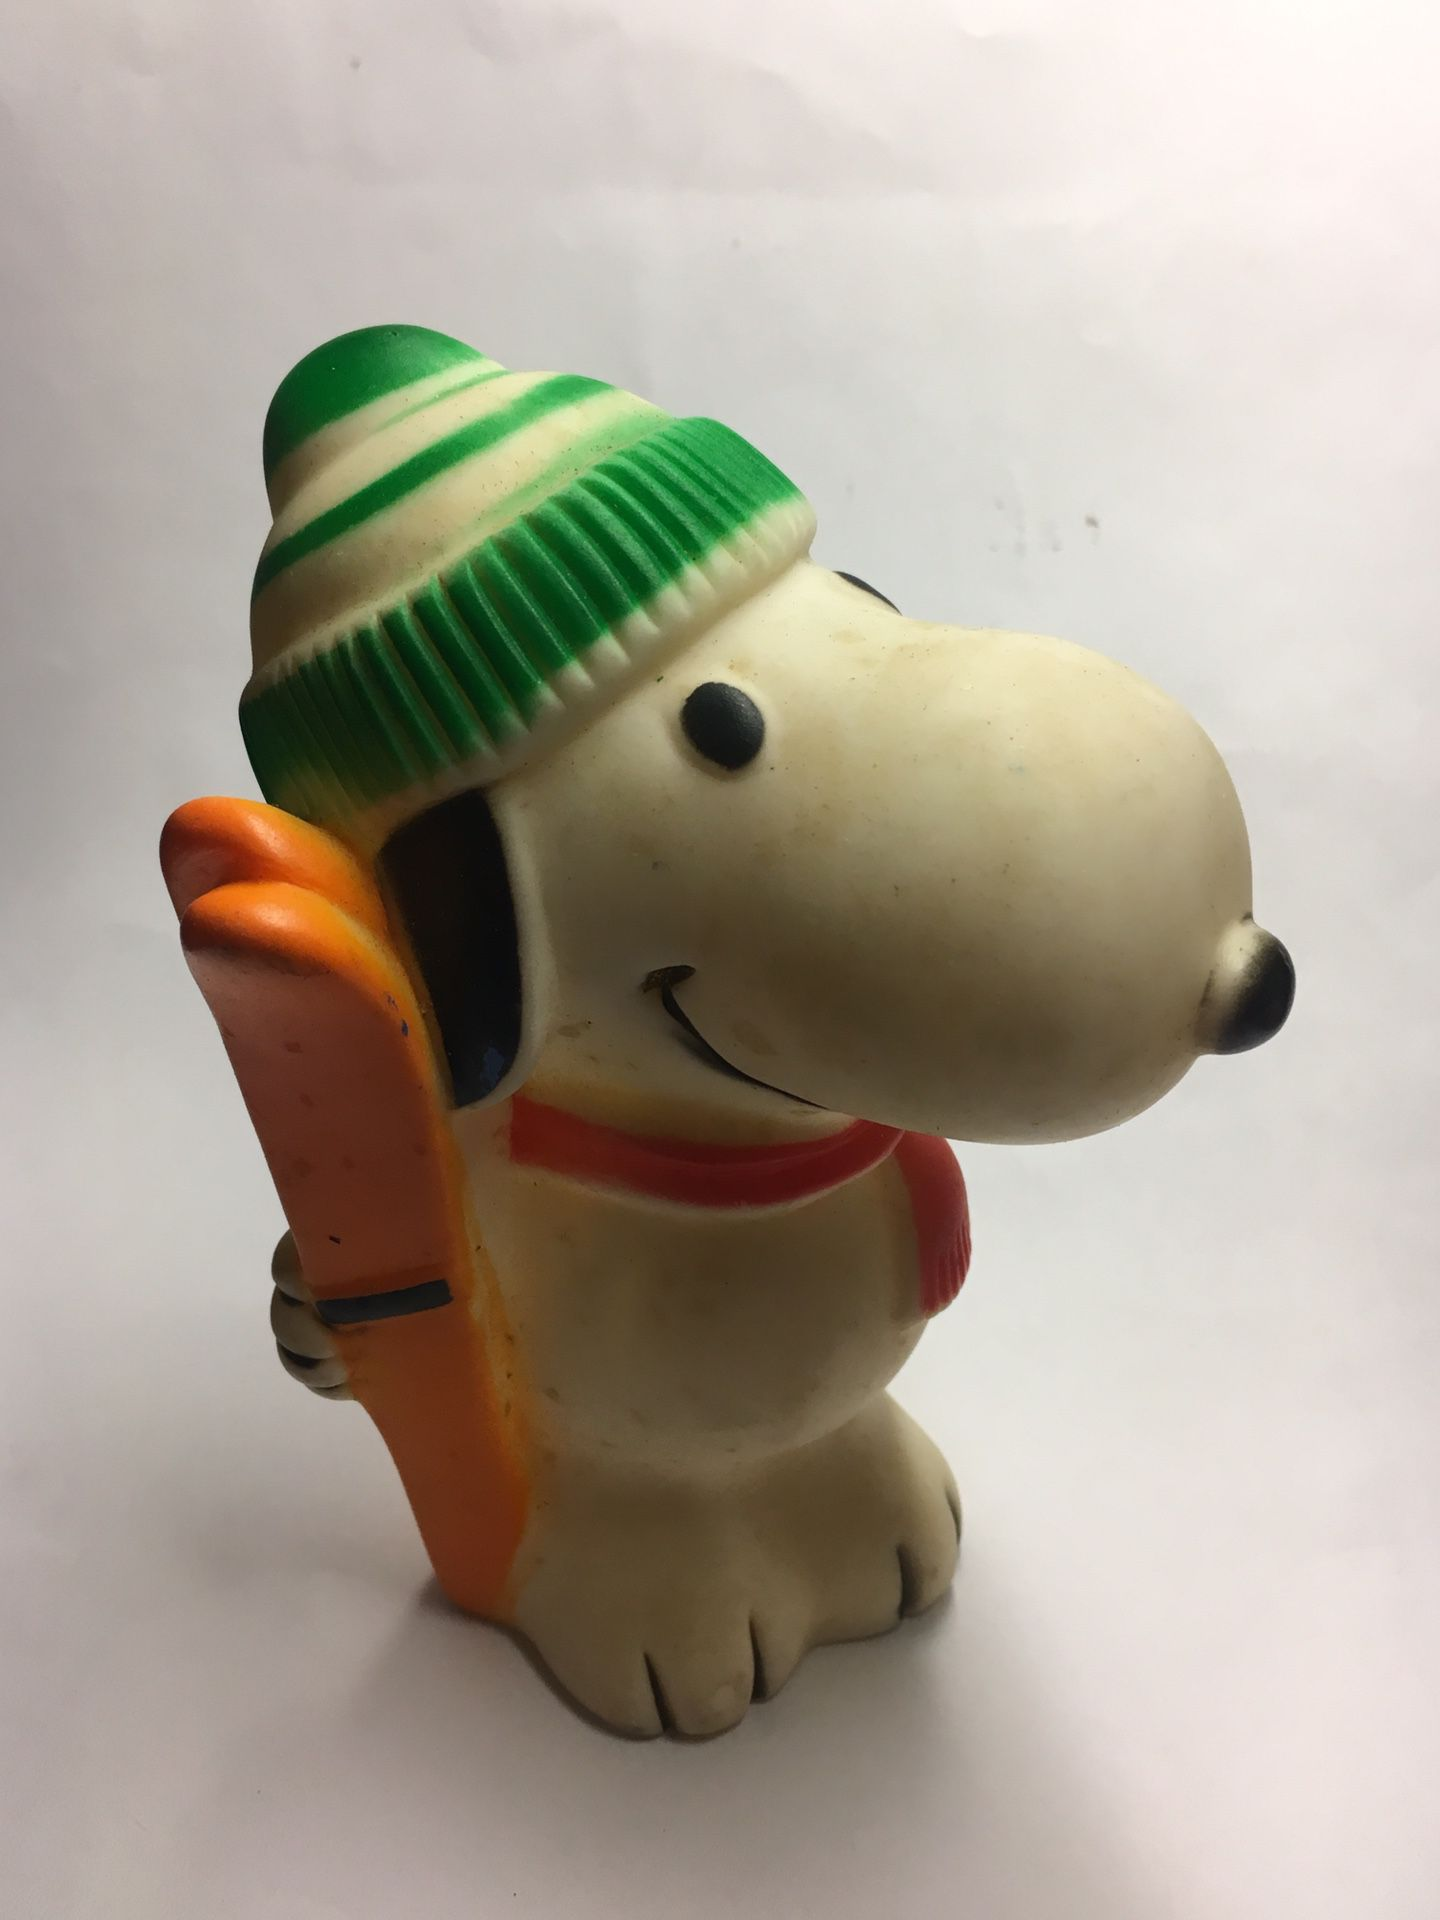 Vintage Snoopy Rubber Squeaker Toy